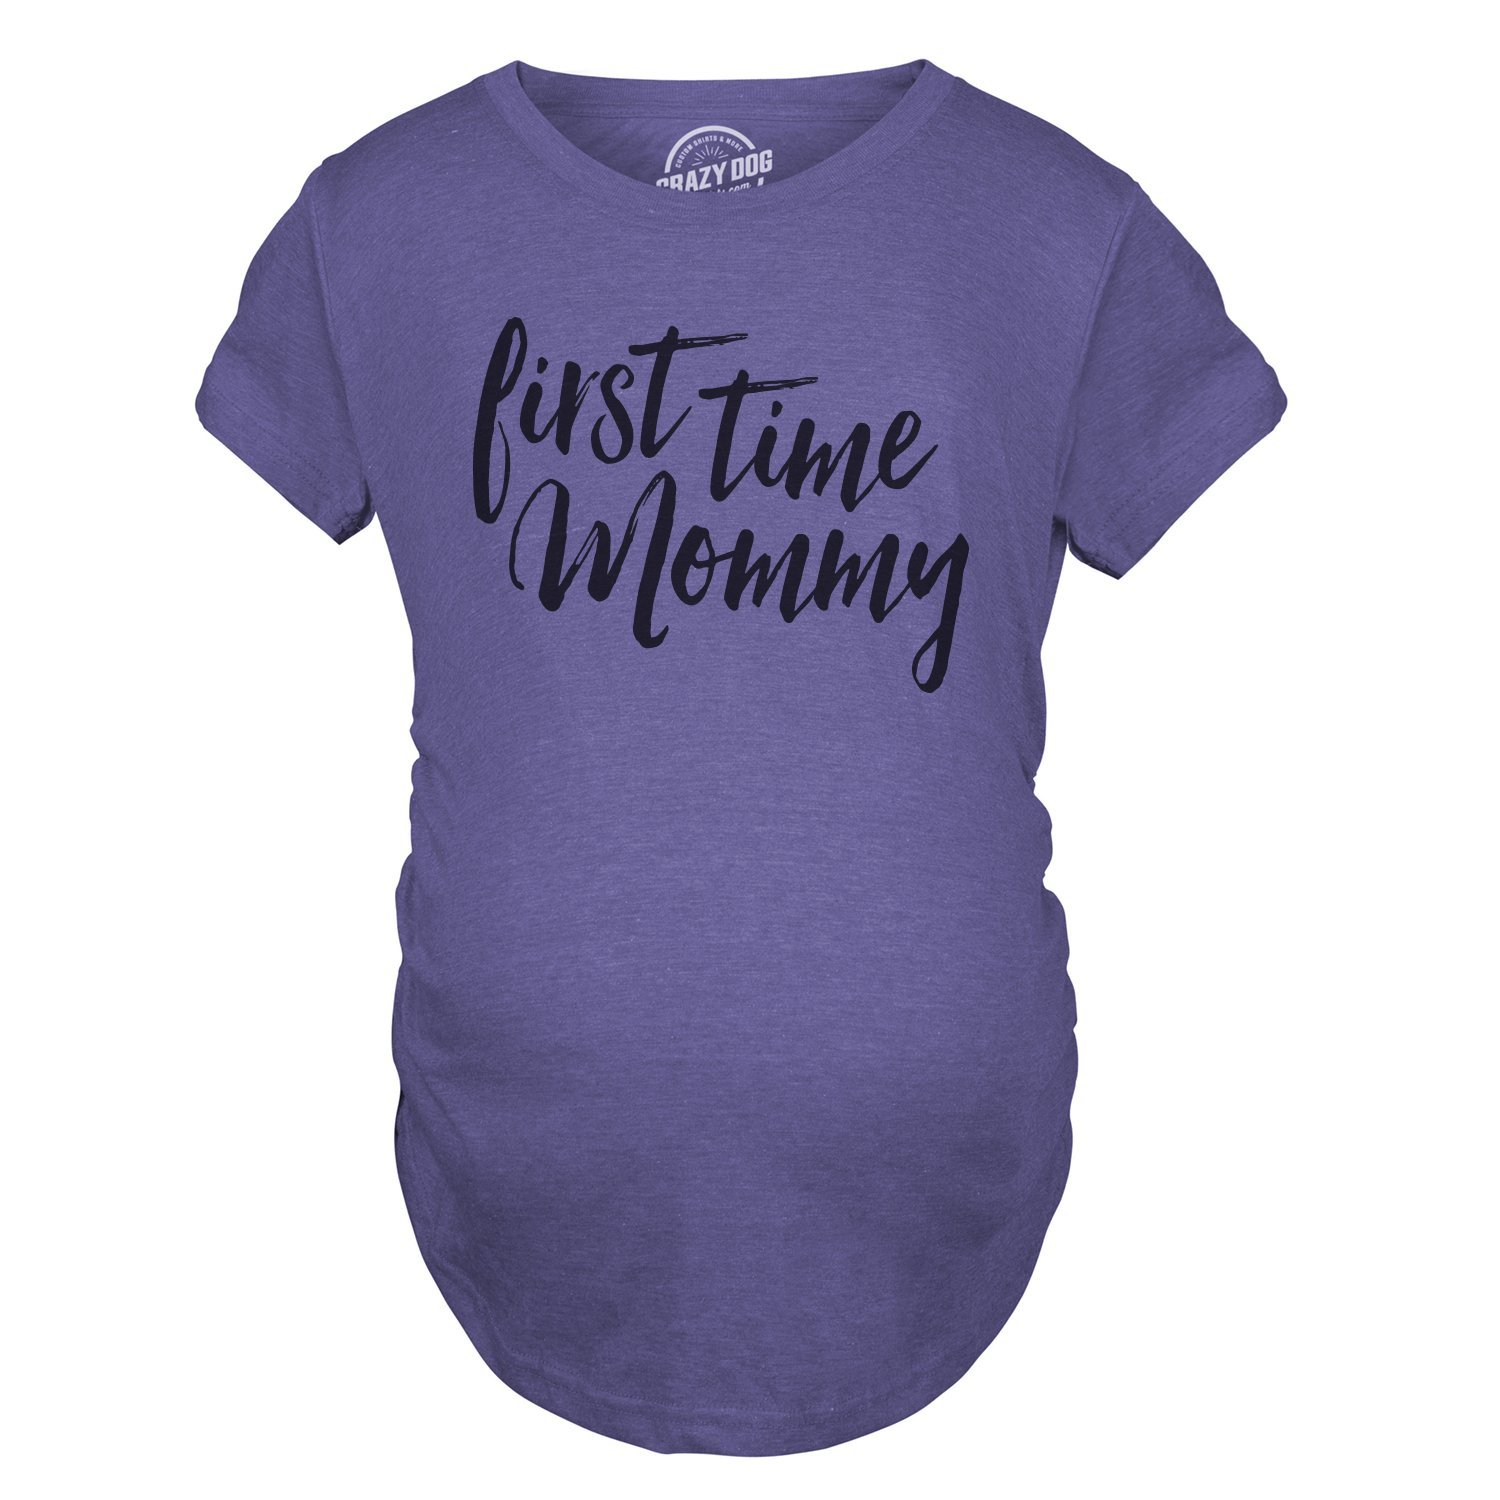 Maternity First Time Mommy Pregnancy Tshirt Cute Belly Bump Tee for Mother to Be (Heather Purple) -XL